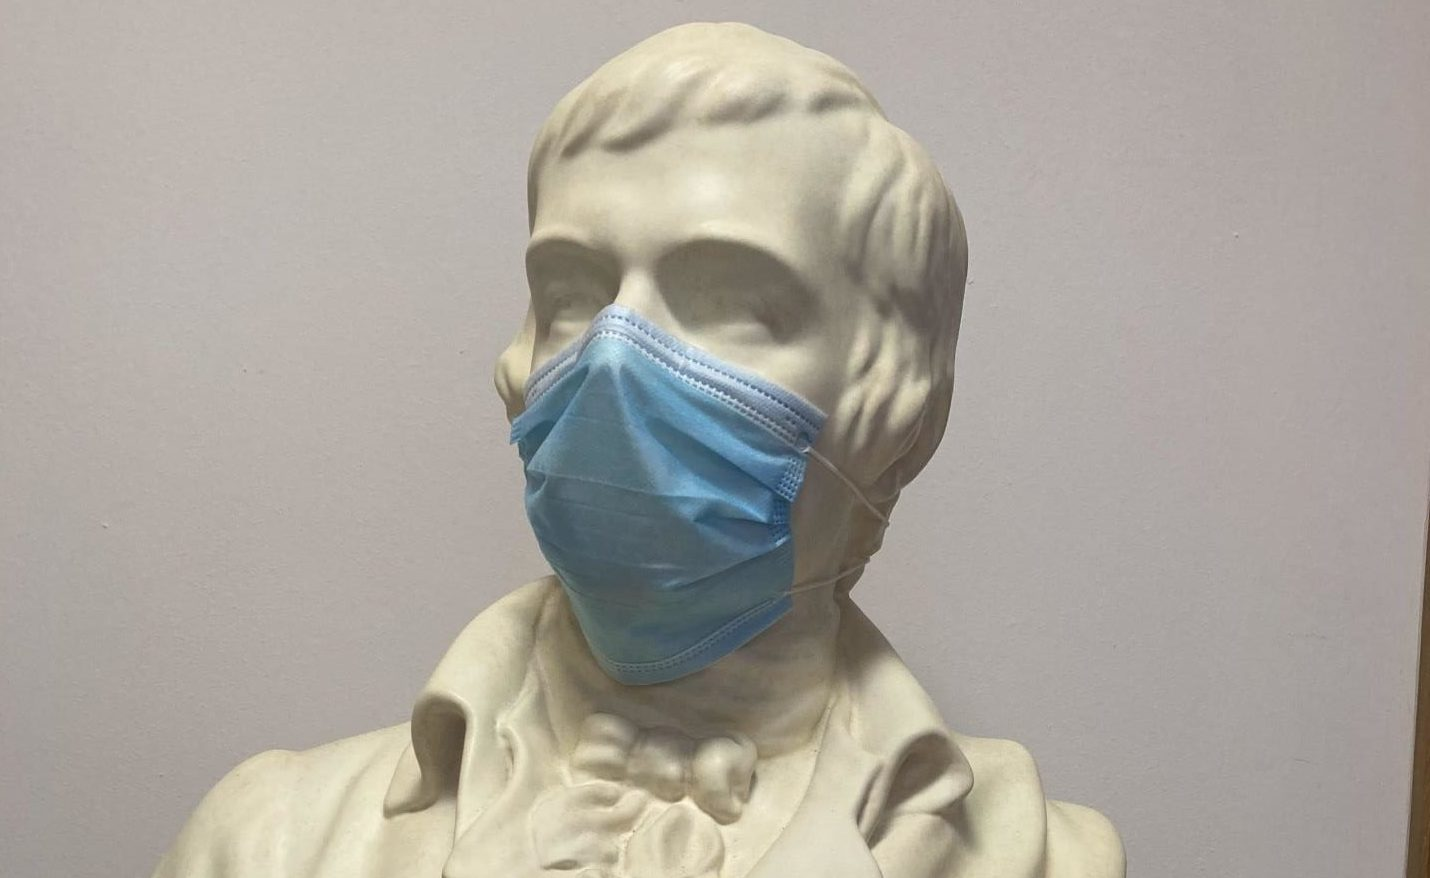 A statue of the poet has been given a face mask as the Robert Burns Birthplace Museum reopens following lockdown